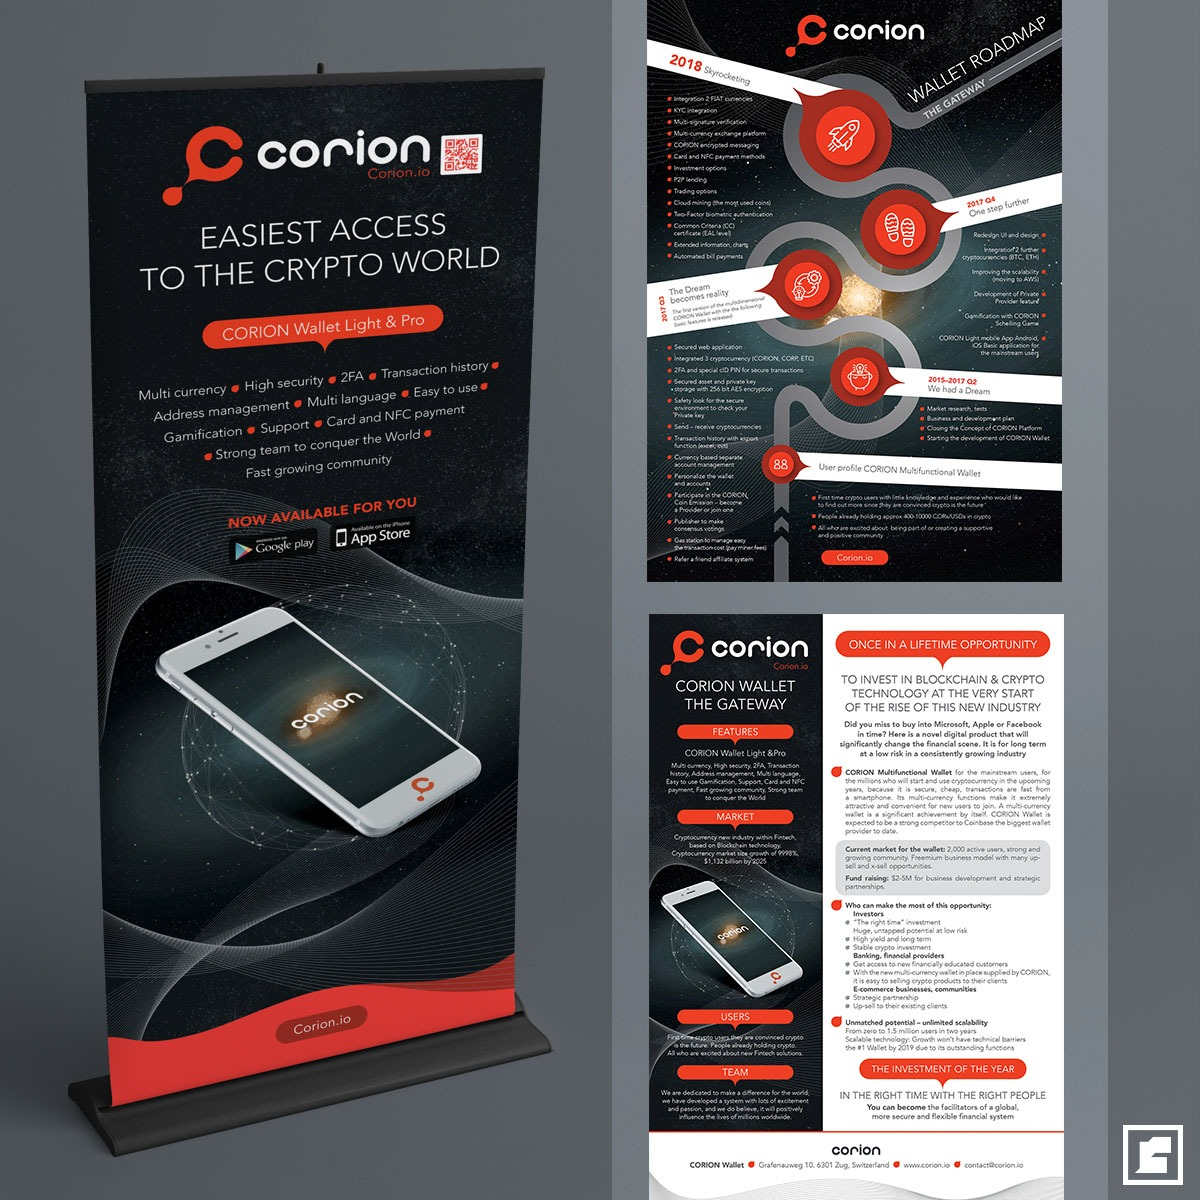 Corion roll-up